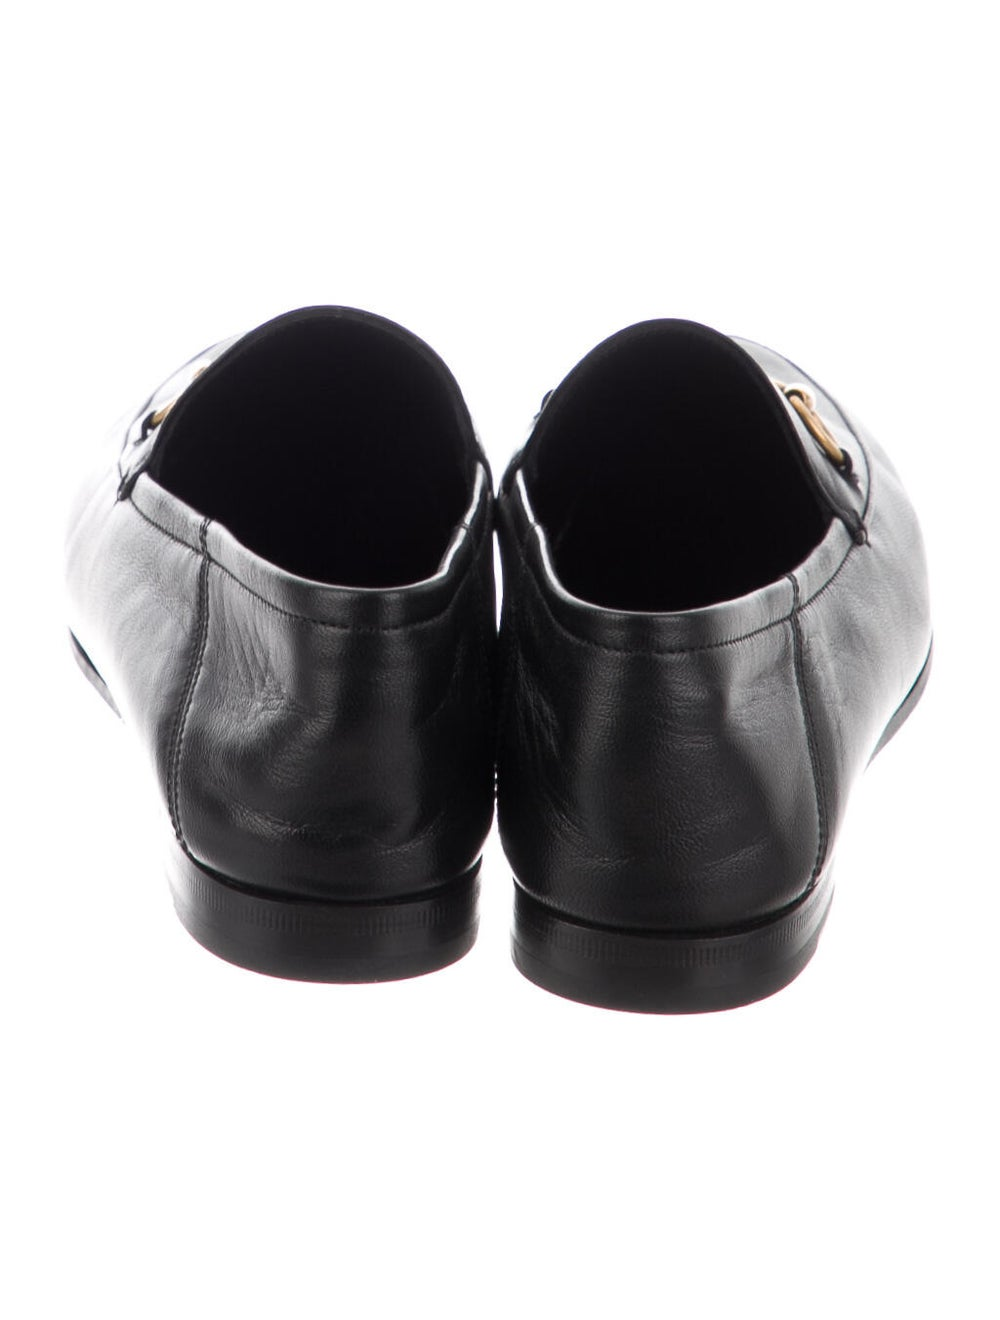 Gucci Horsebit Accent Leather Loafers Black - image 4